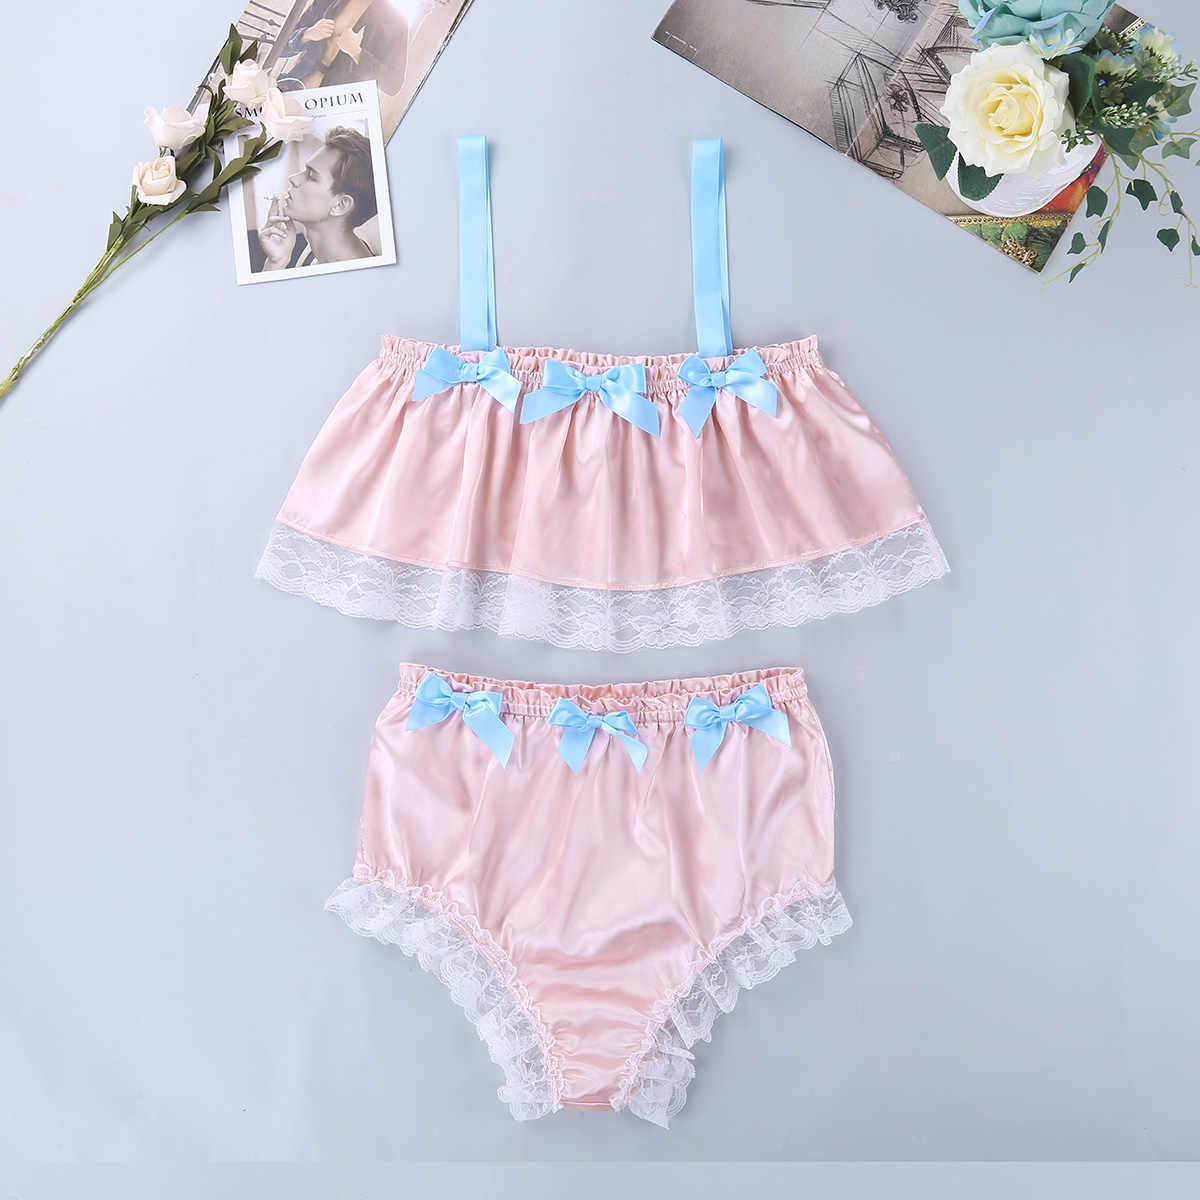 d6e469fa56ee9 TiaoBug New Men Soft Satin Lace Crossdressing Sissy Lingerie Set Spaghetti  Straps Crop Top Bikini Briefs Hot Sexy Underwear Set